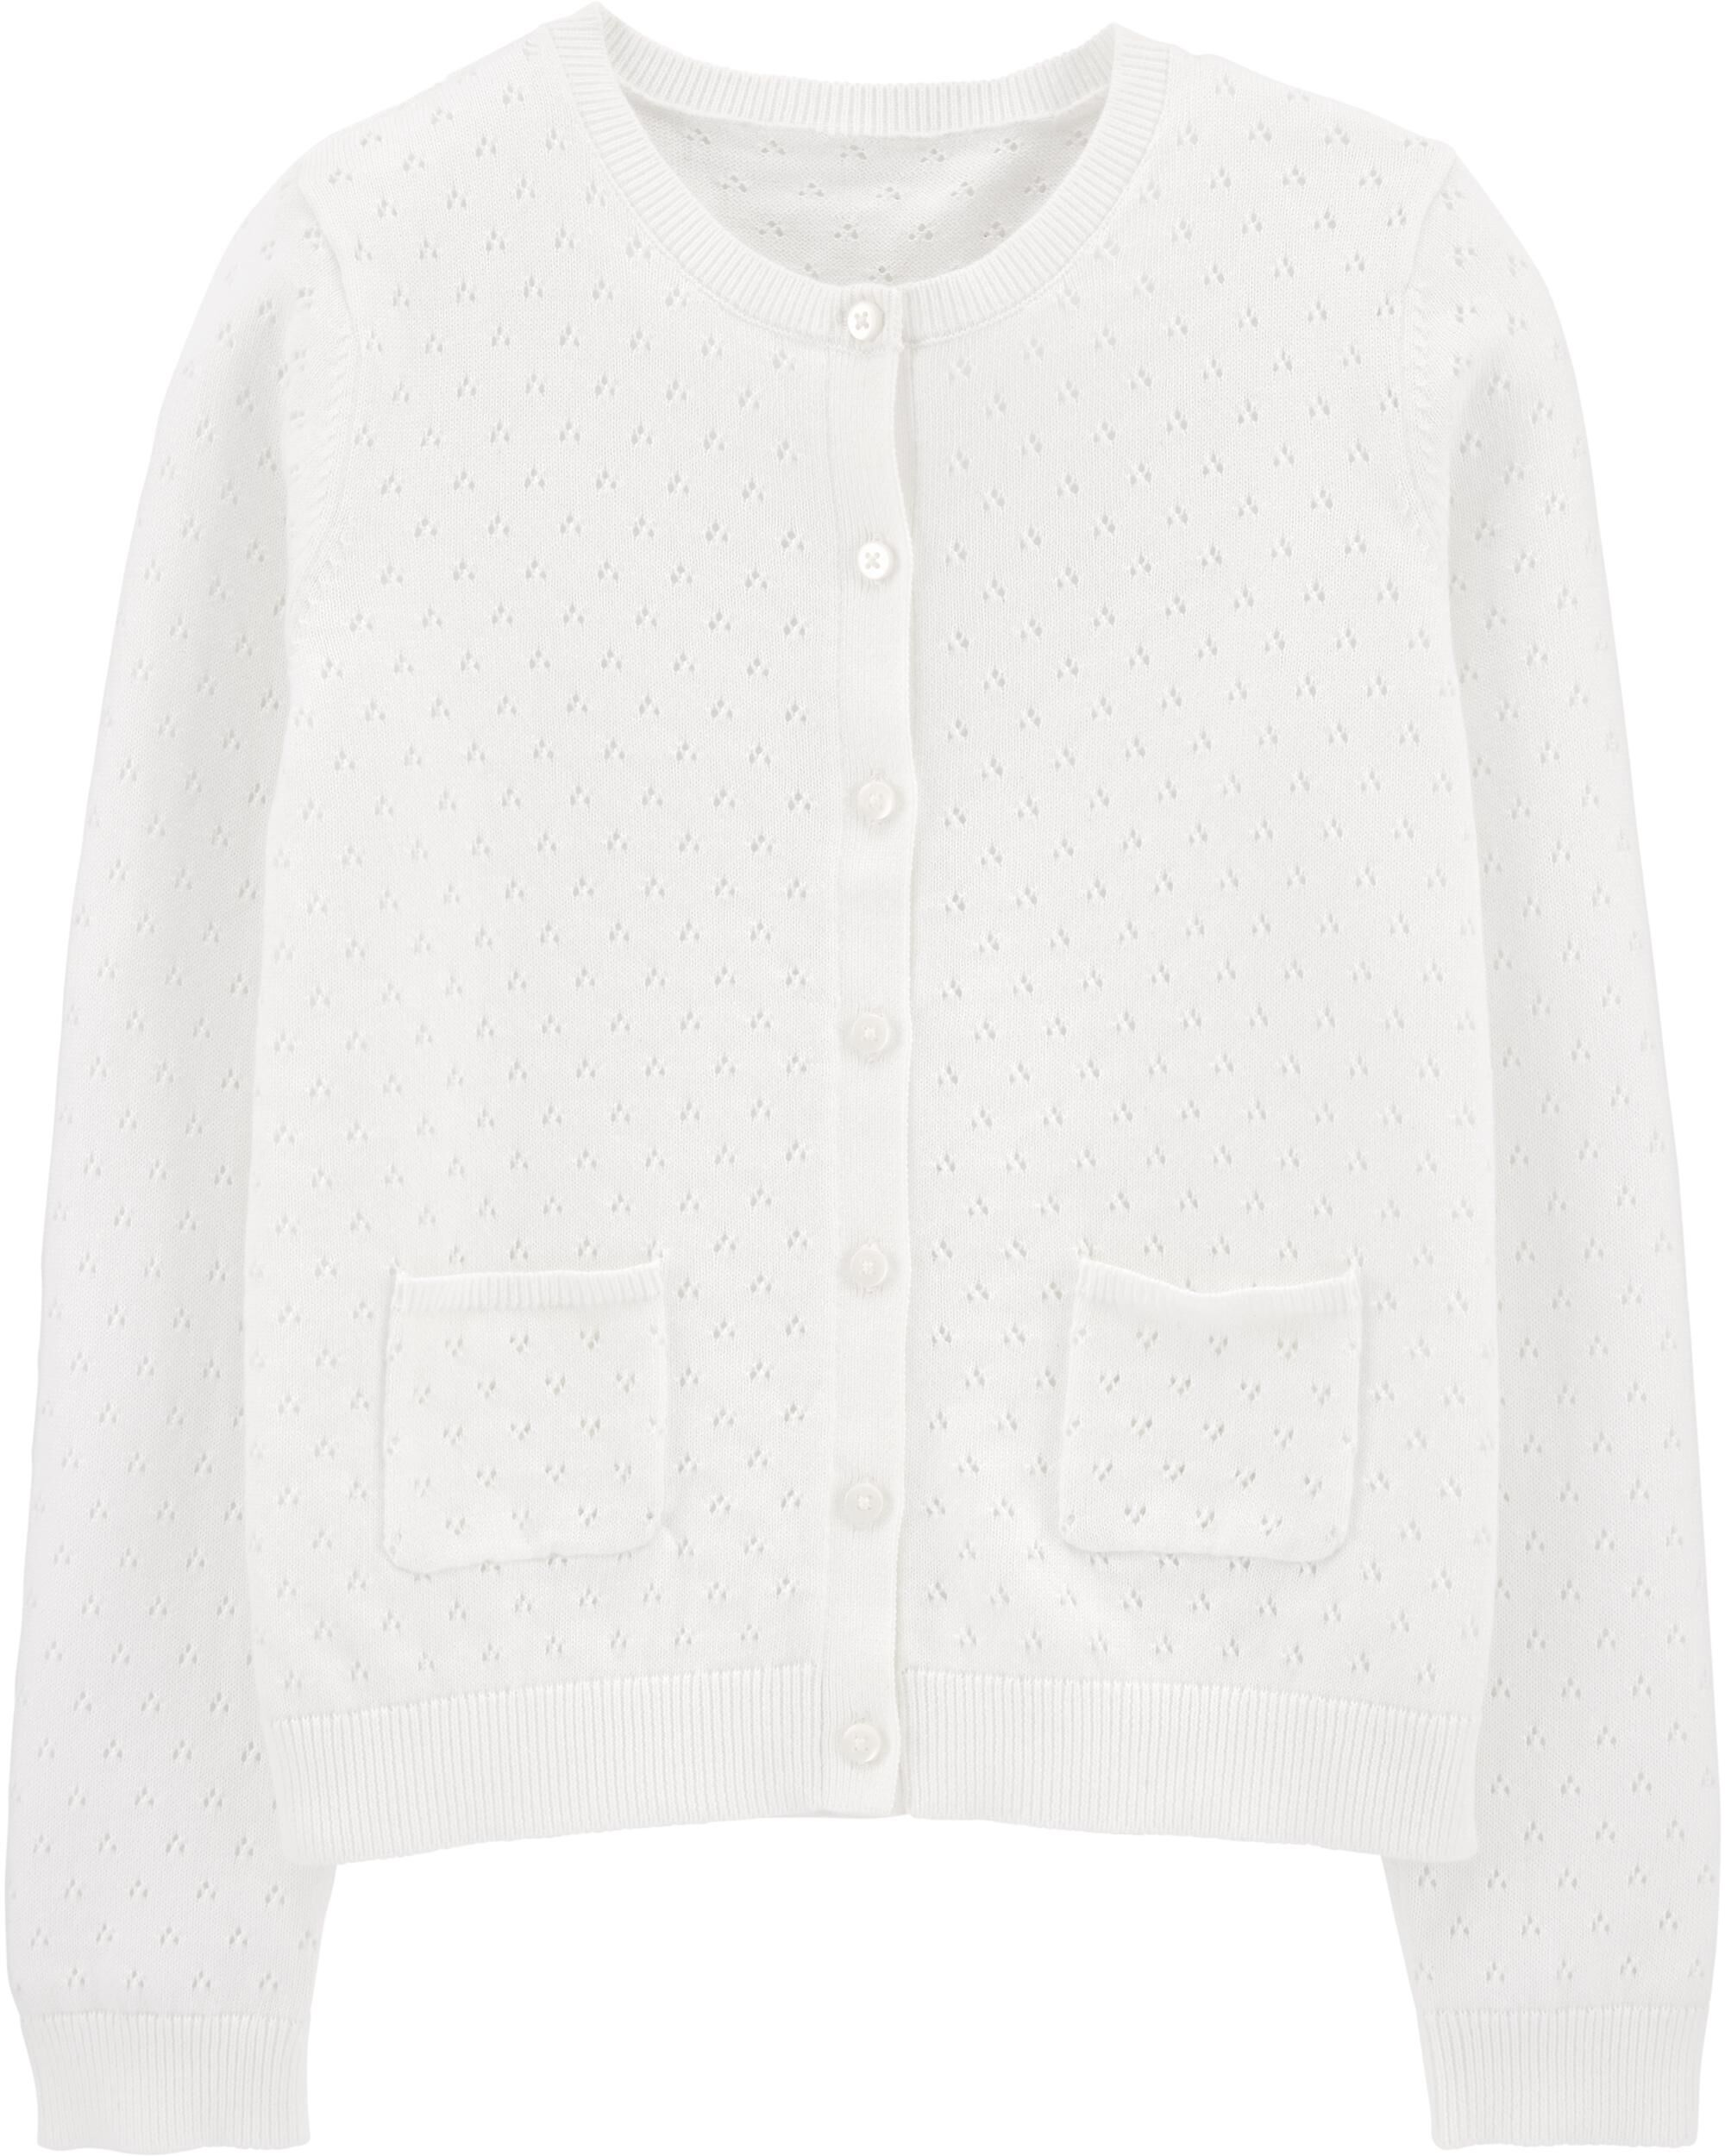 *CLEARANCE* Pointelle Cardigan